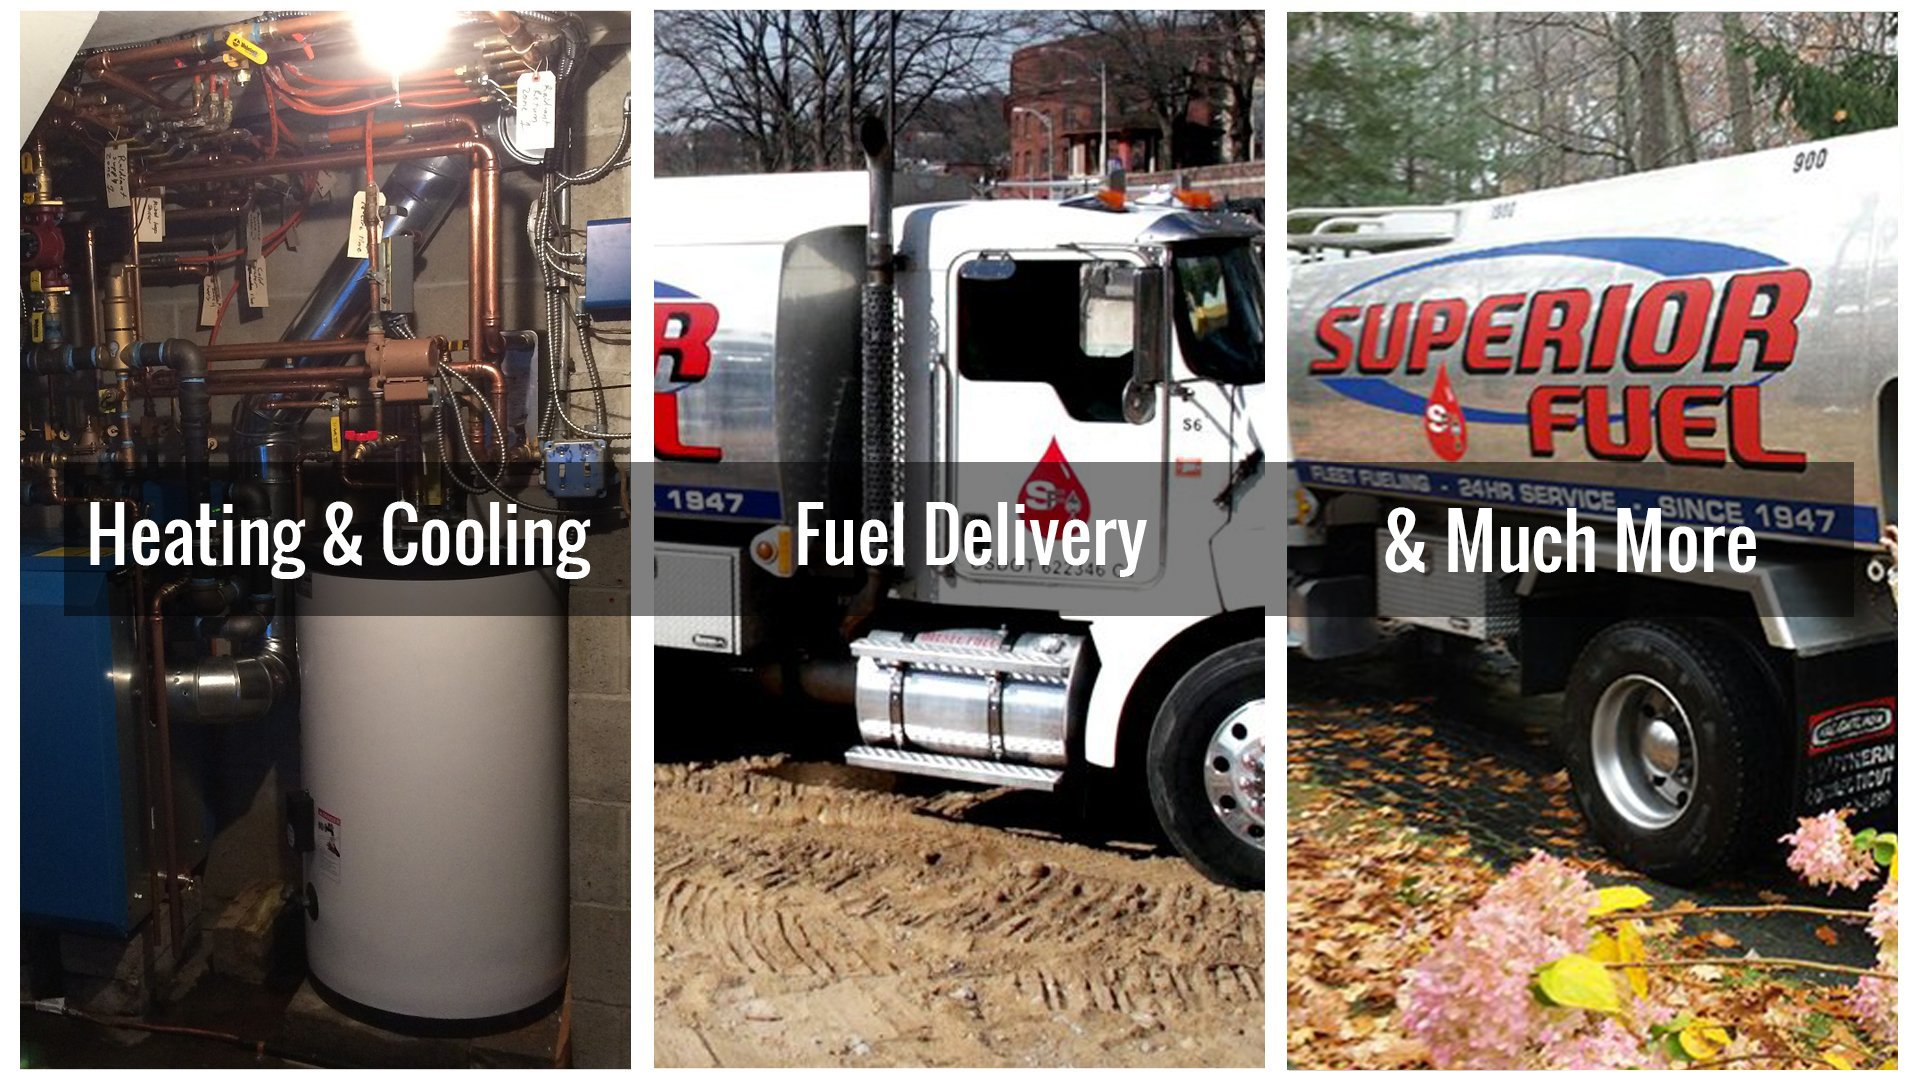 Superior Fuel's Quality Services